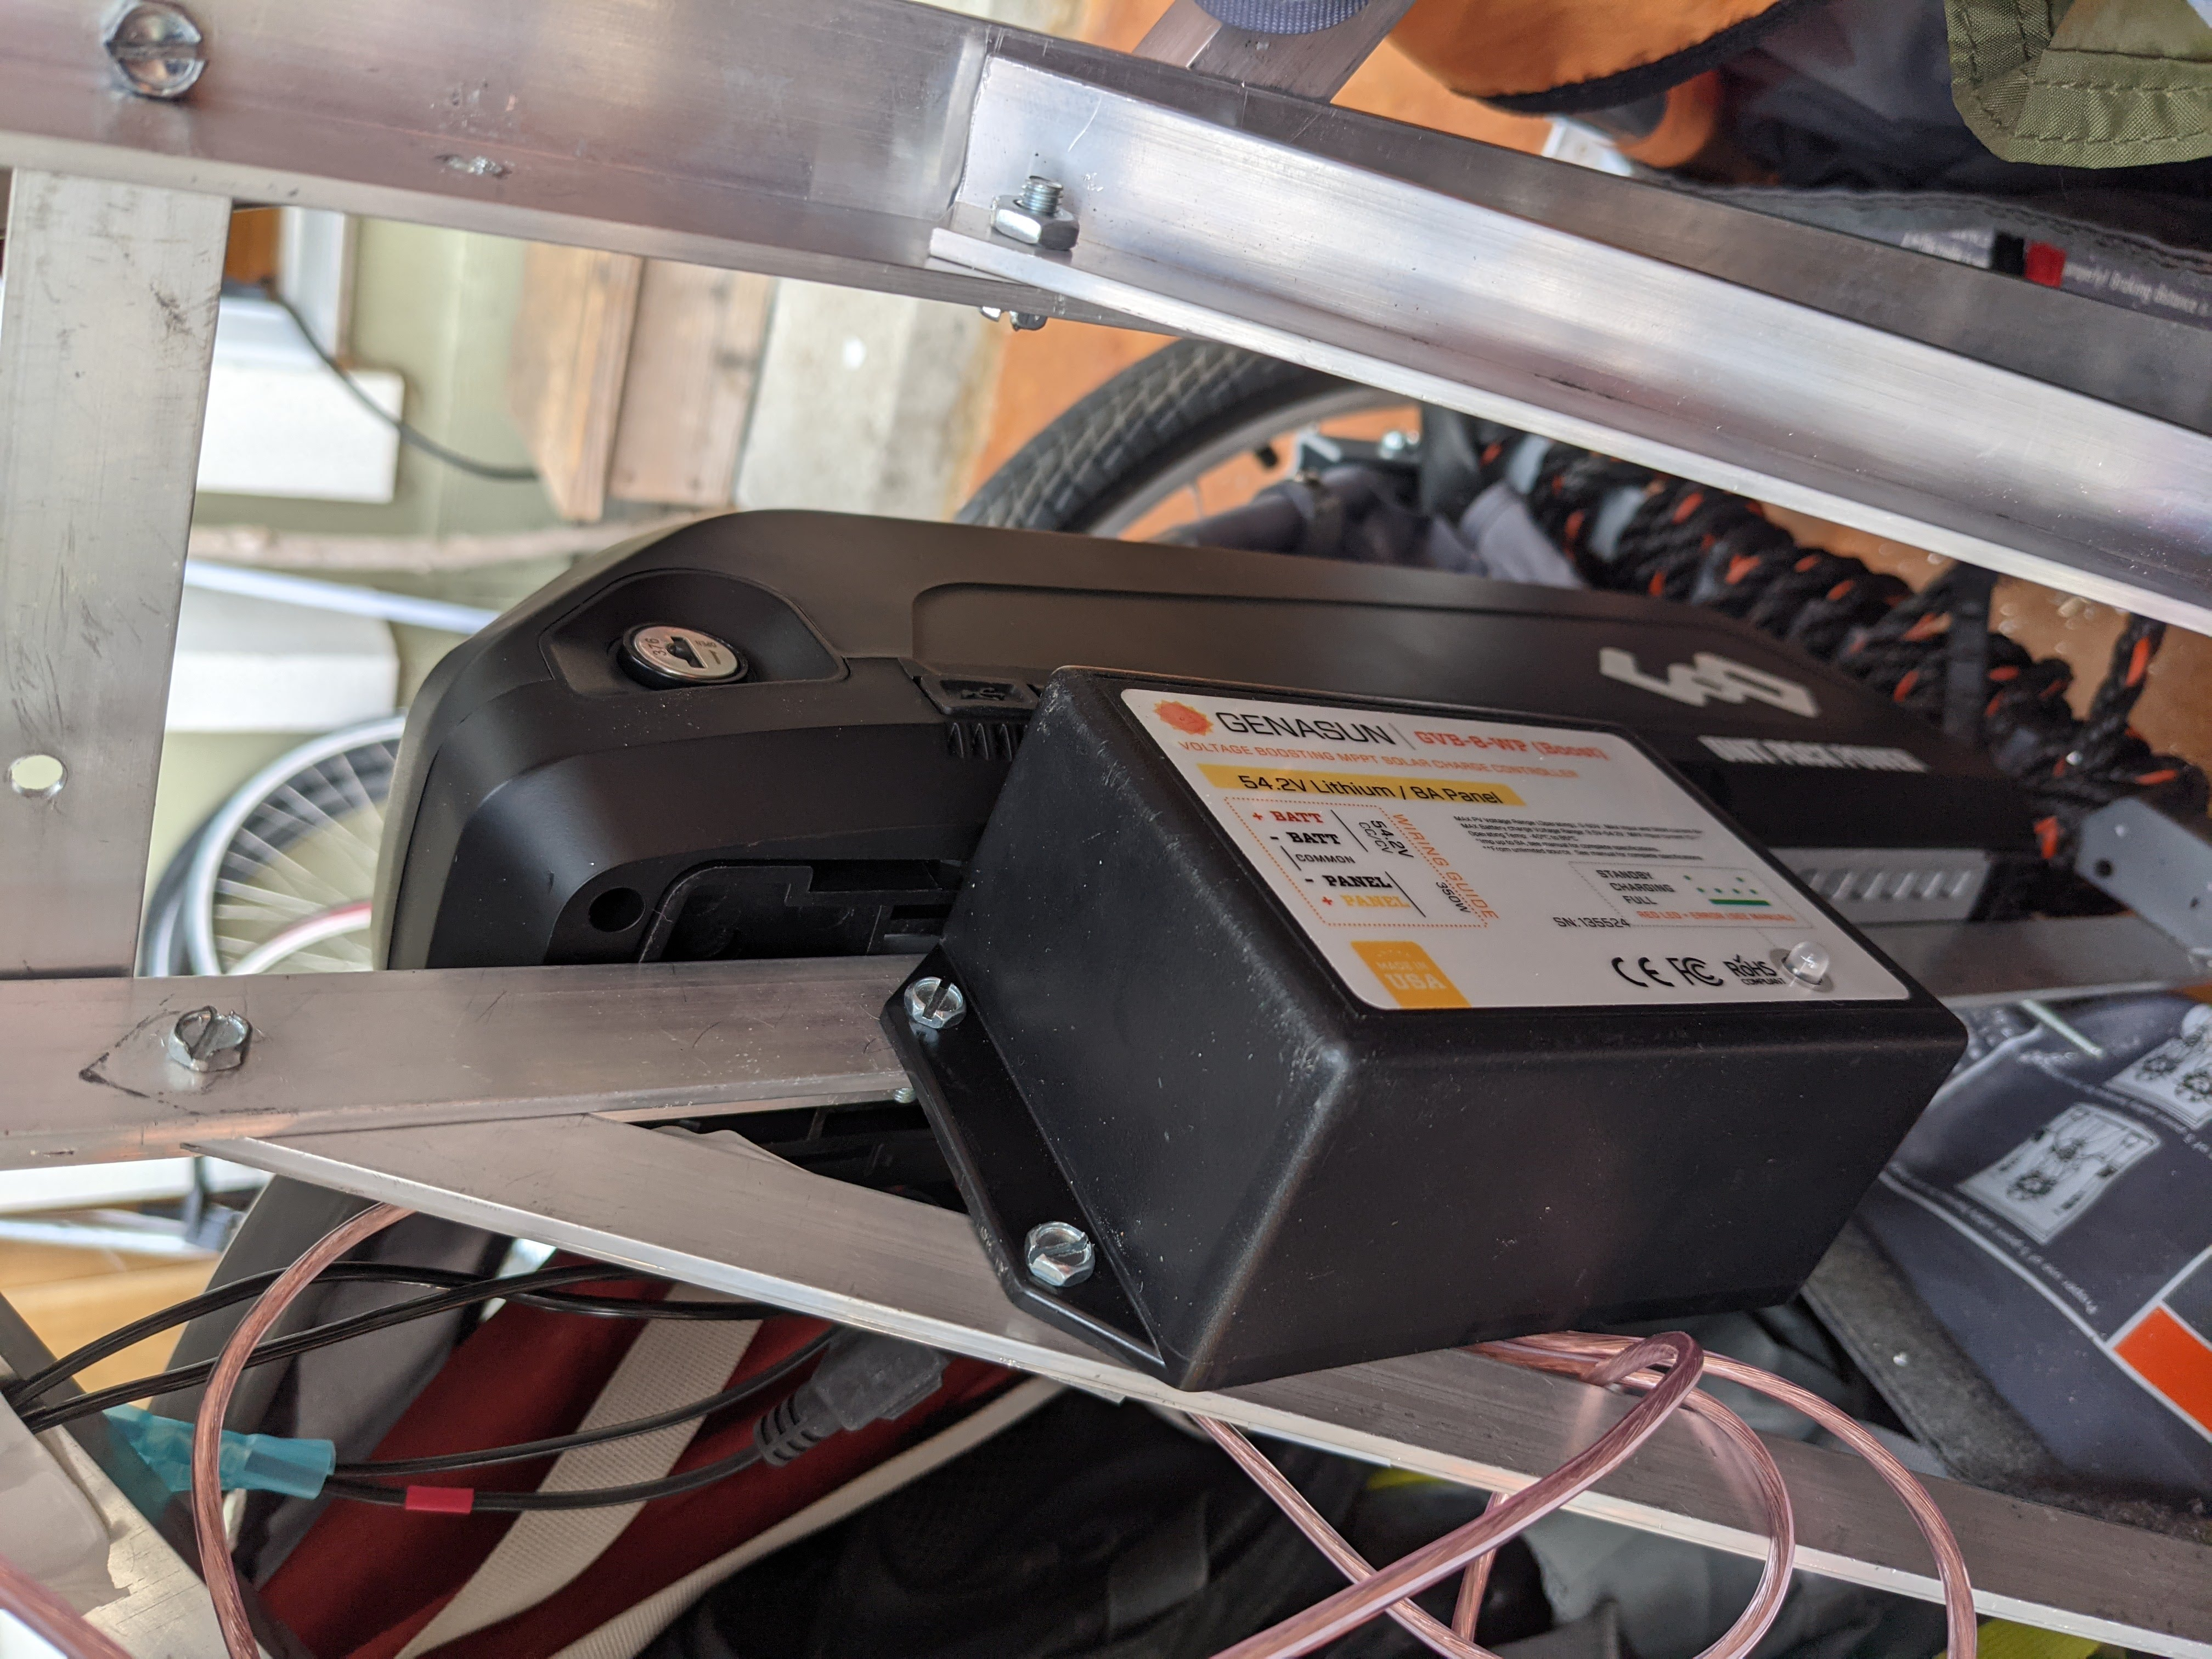 Genasun charge controller mounted in trailer